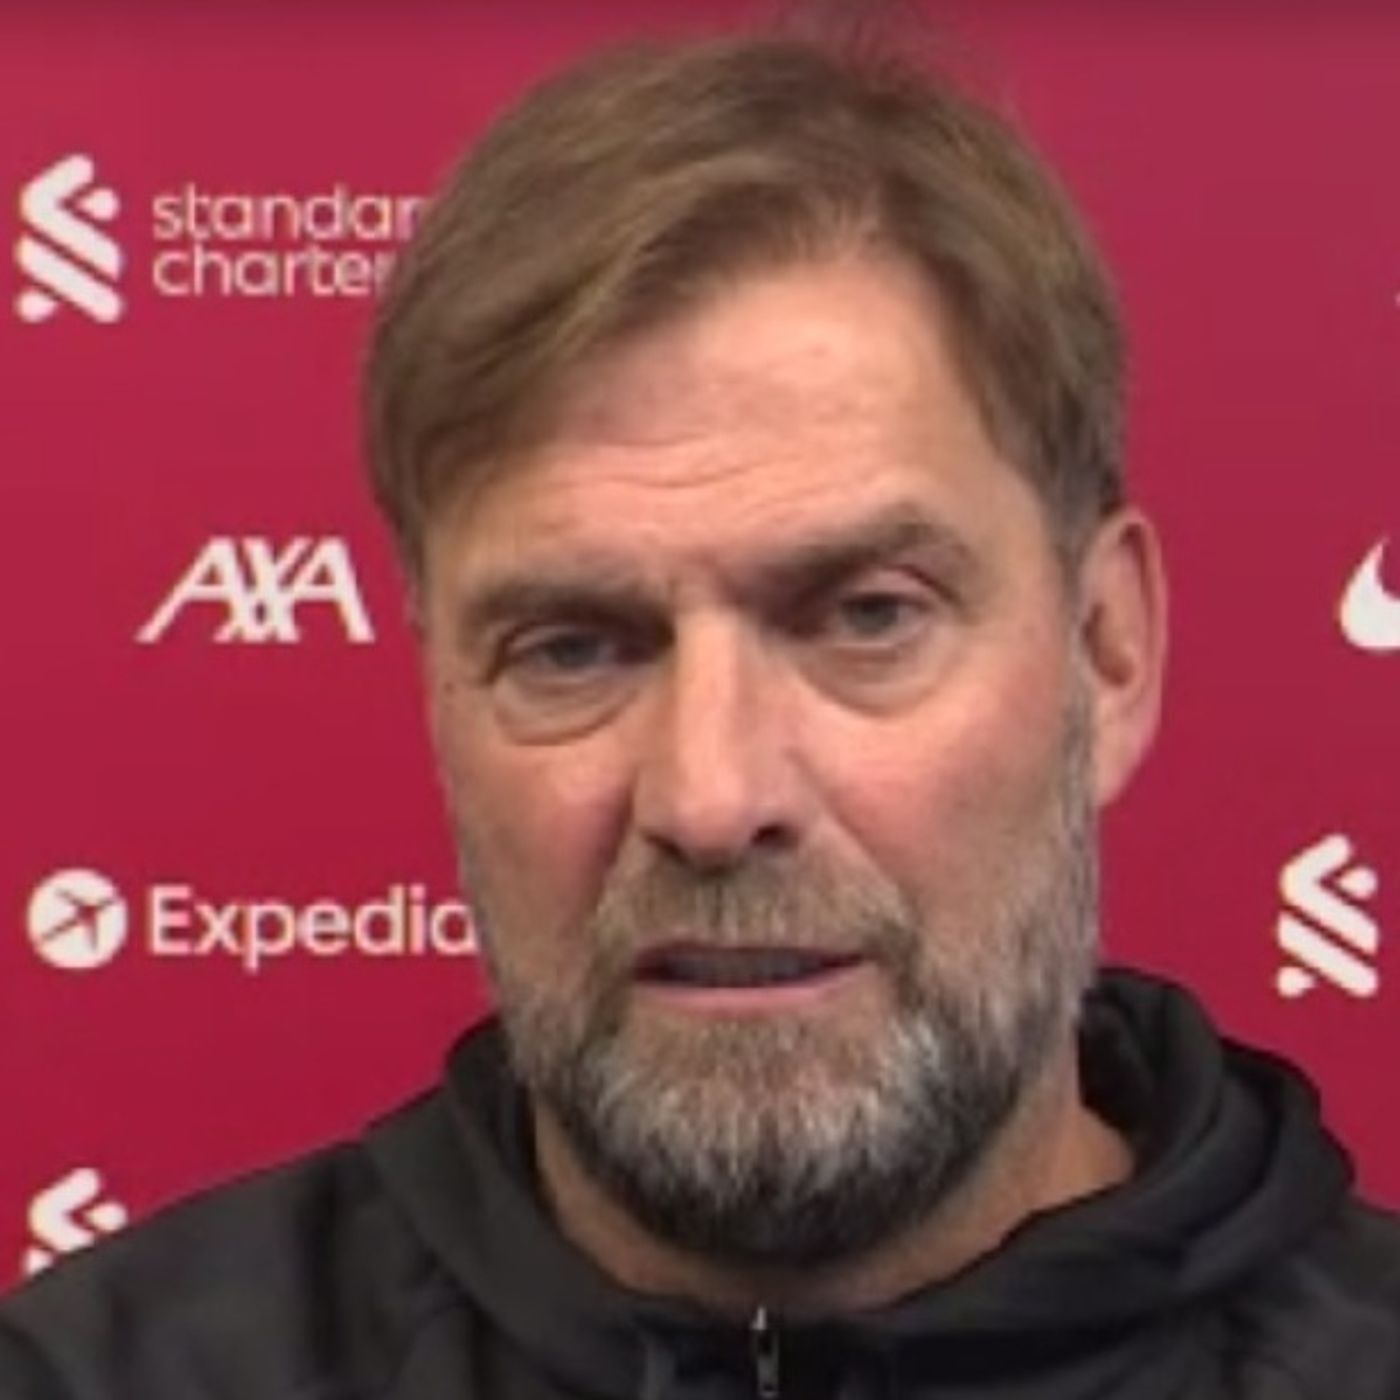 Press Conference: Jurgen Klopp reveals Alisson and Fabinho decision plus Curtis Jones injury and gives thoughts on Newcastle United takeover